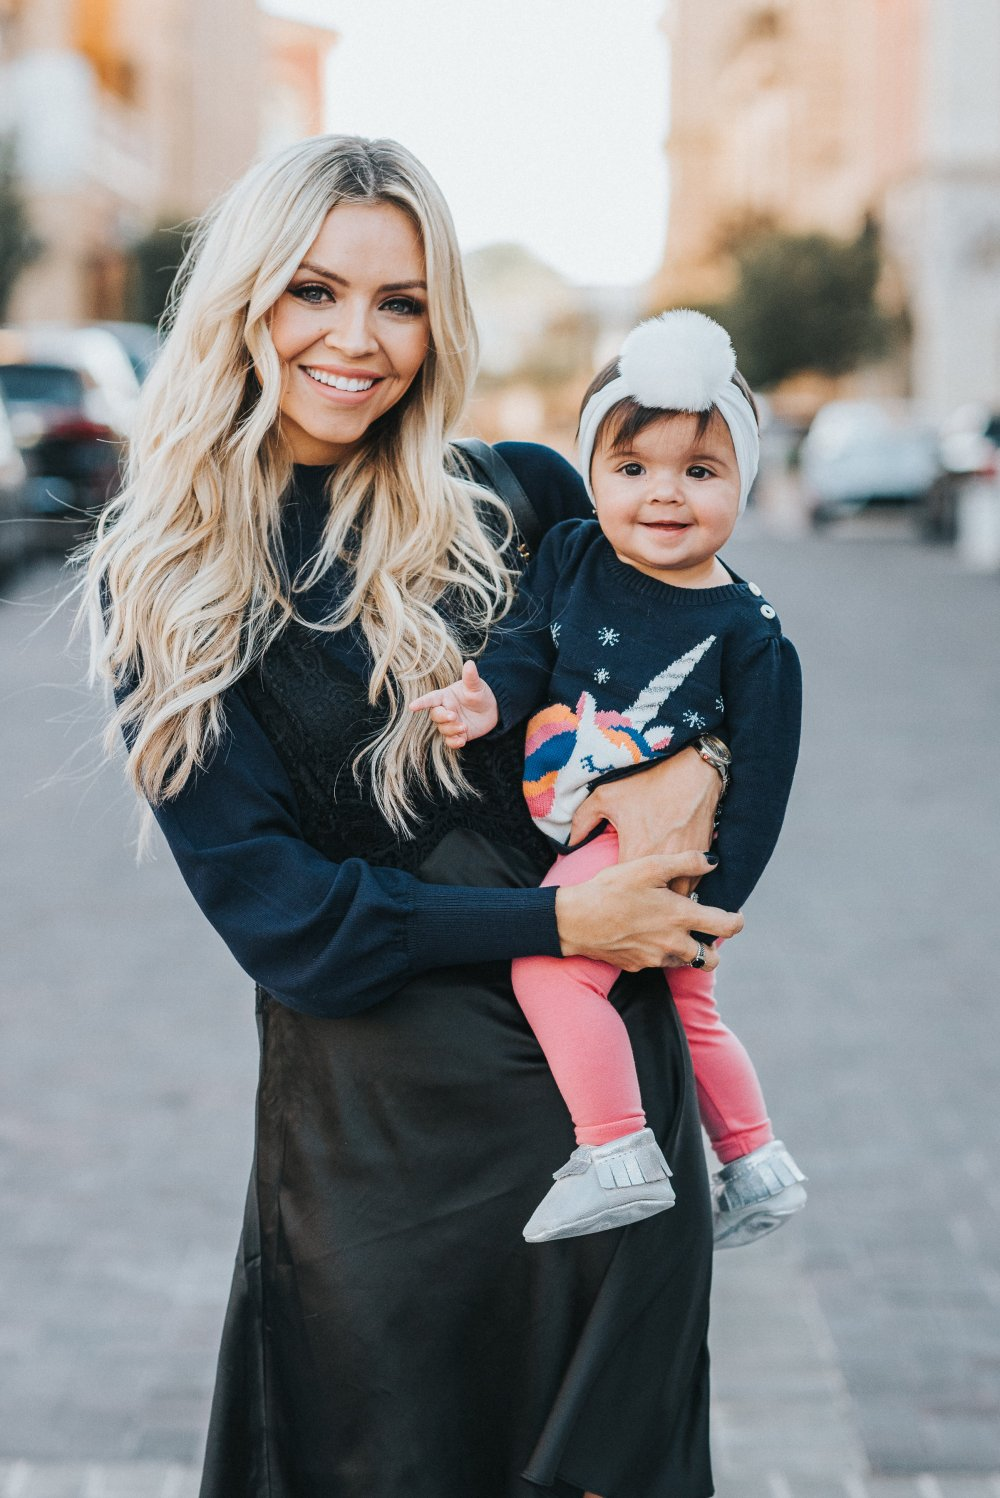 Mother-Daughter photoshoot! I am loving sweet girls' unicorn sweater and pom headband! My slip dress with sweater is perfect for fall or winter! It is comfortable and very versatile! These tall black boots are to die for! #motherdaughter #fashion #girlsfashion #unicorn